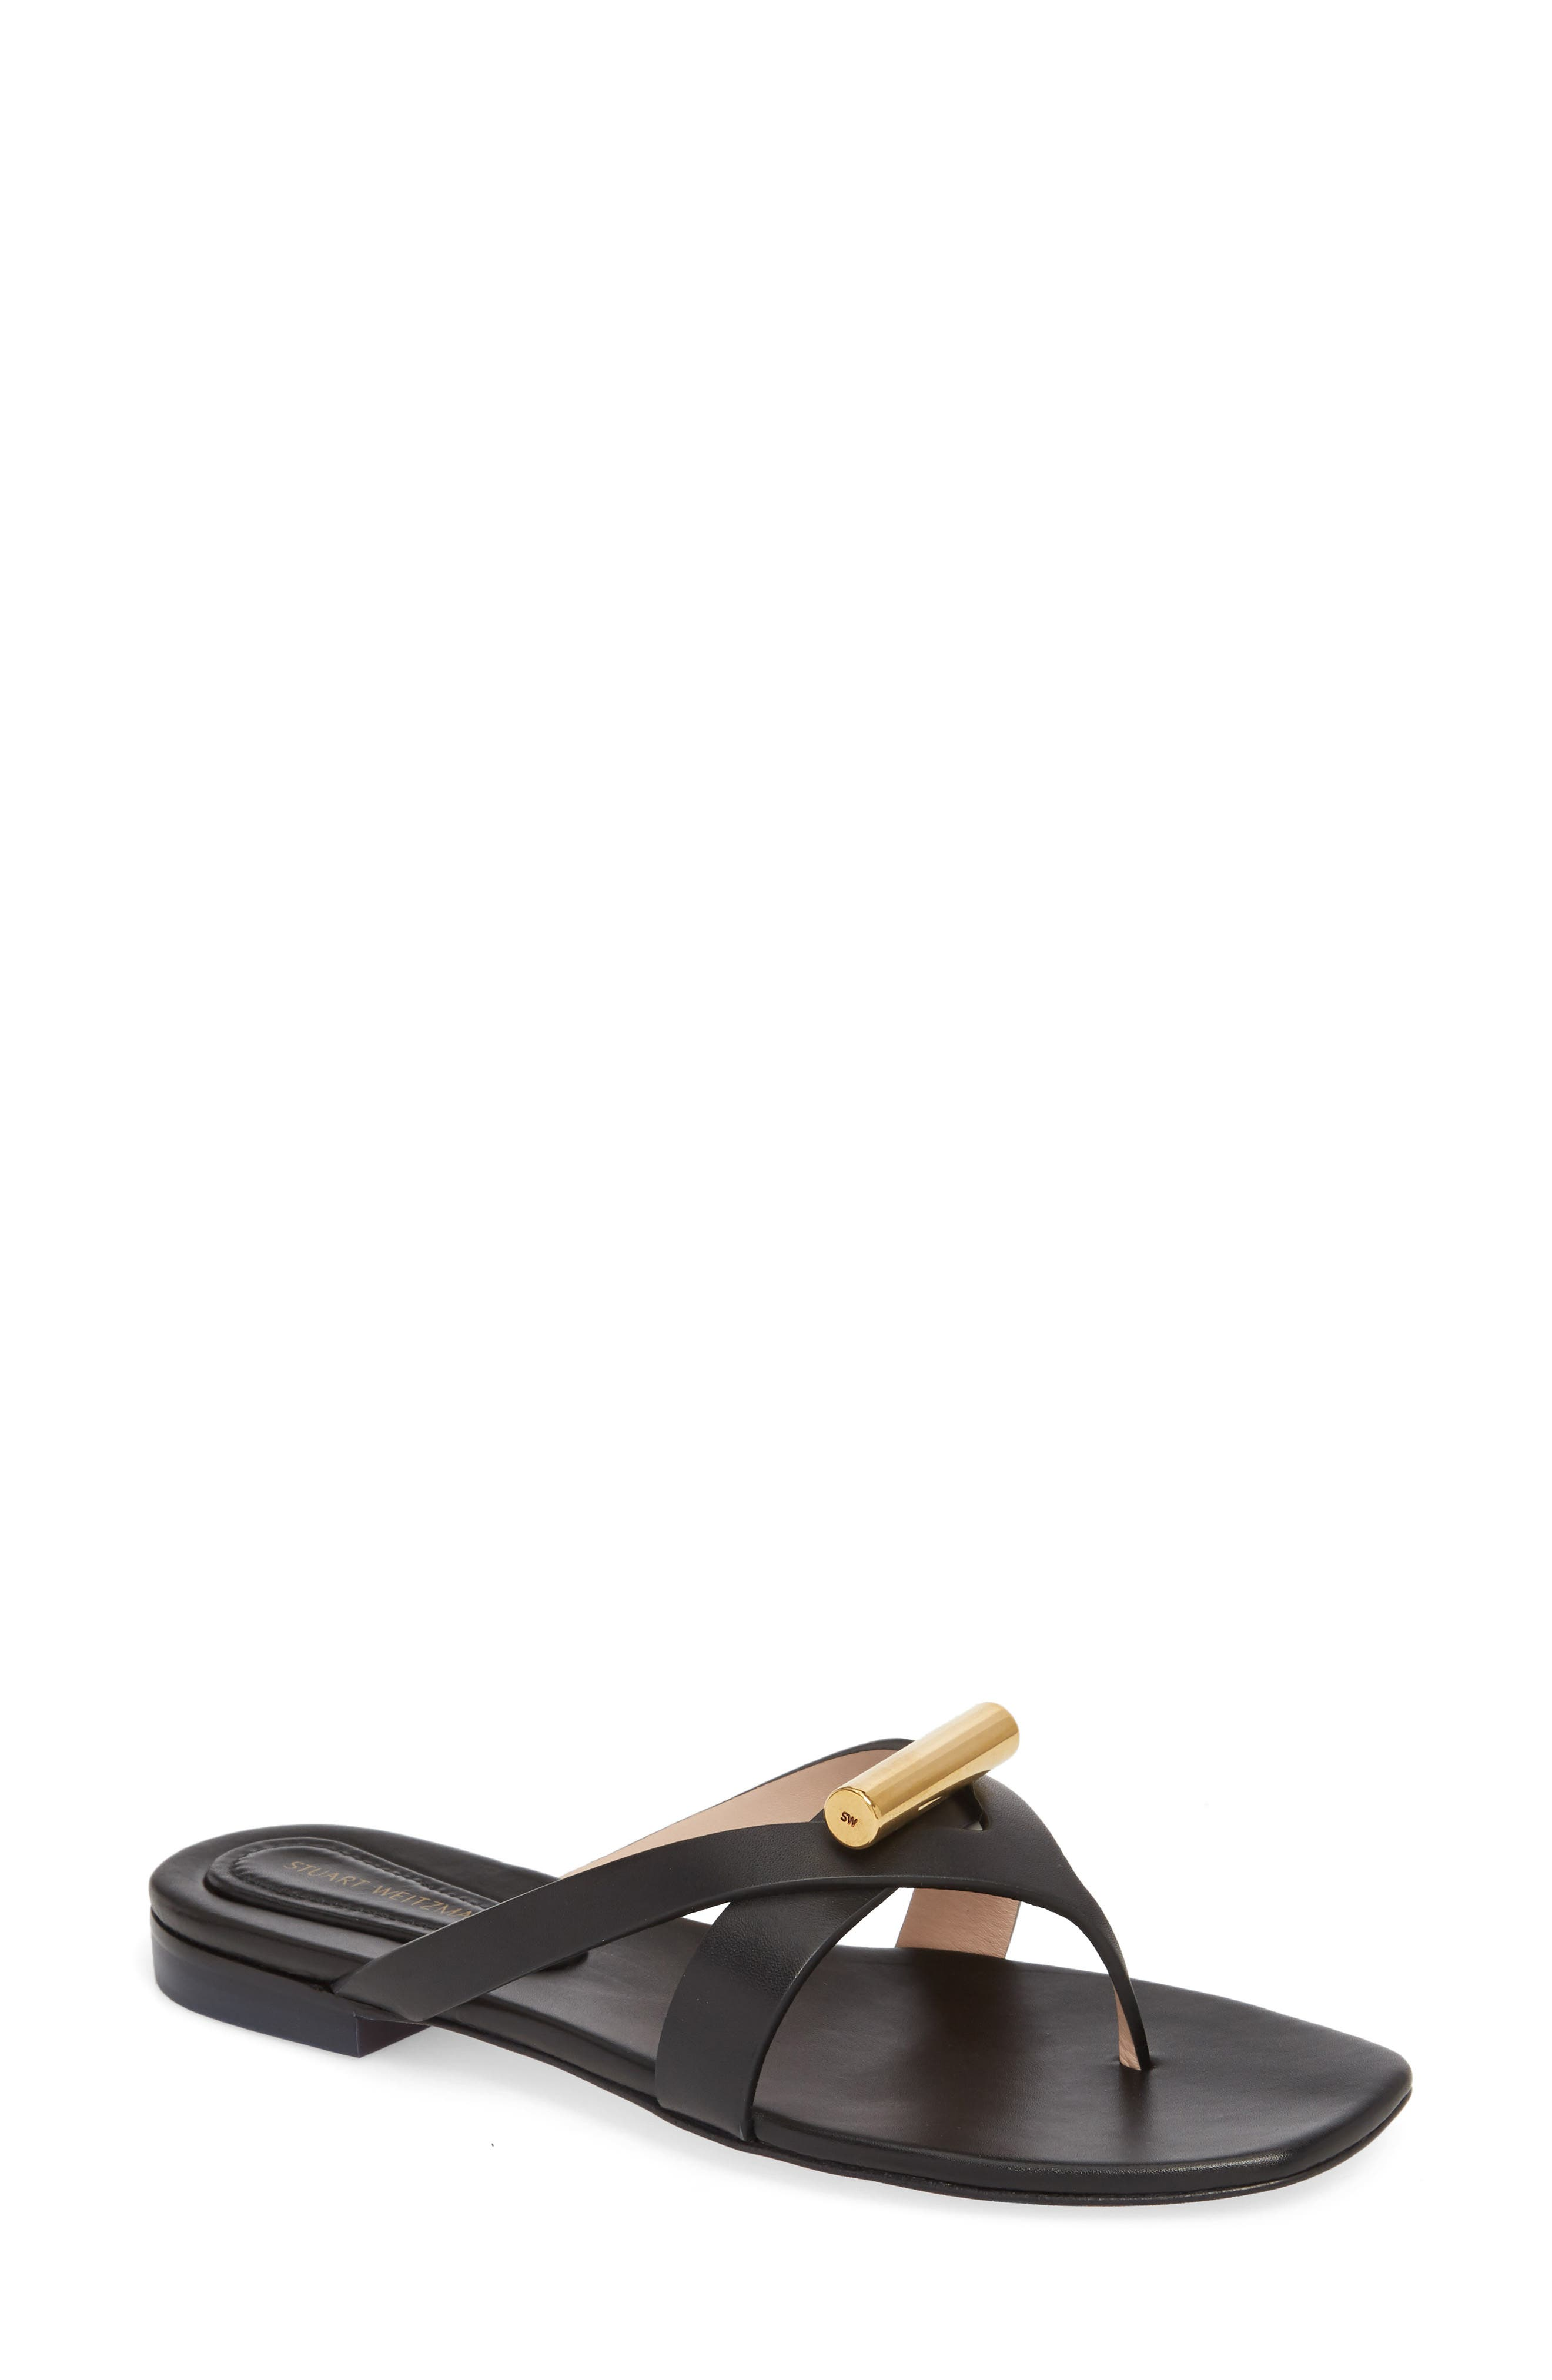 Arro Thong Sandal,                         Main,                         color, Pitch Black Dexter